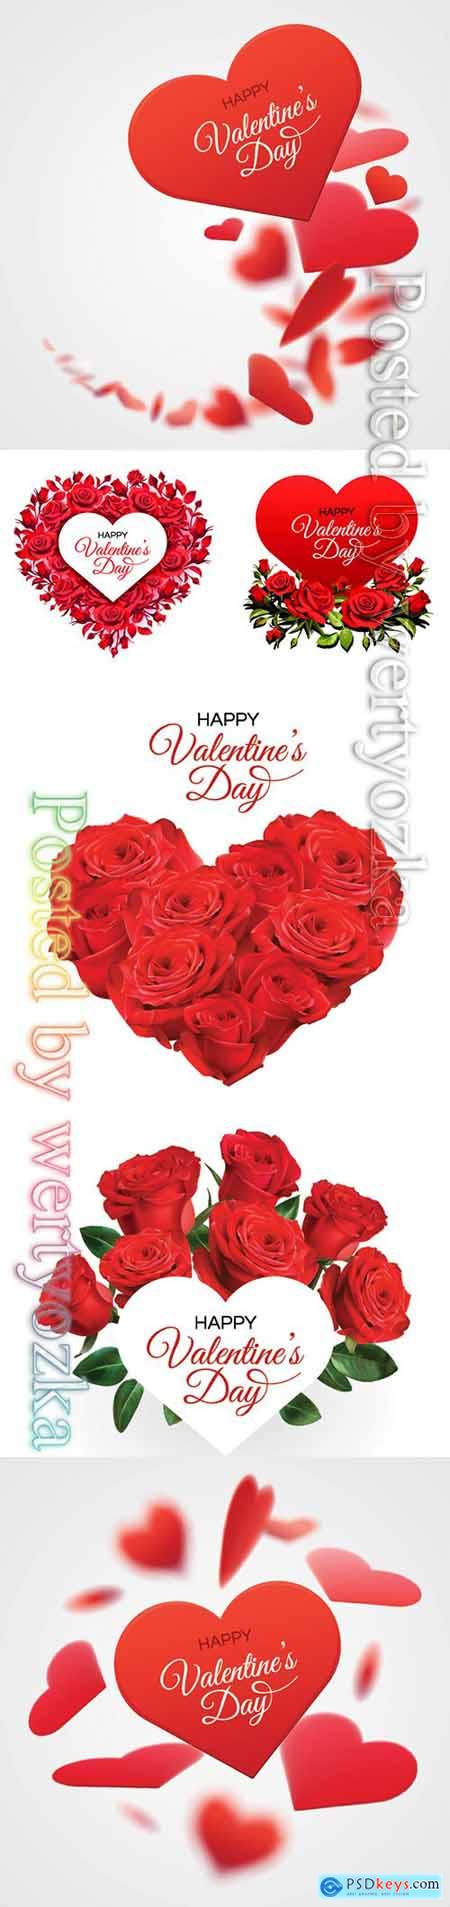 Valentines Day greeting card template, red roses